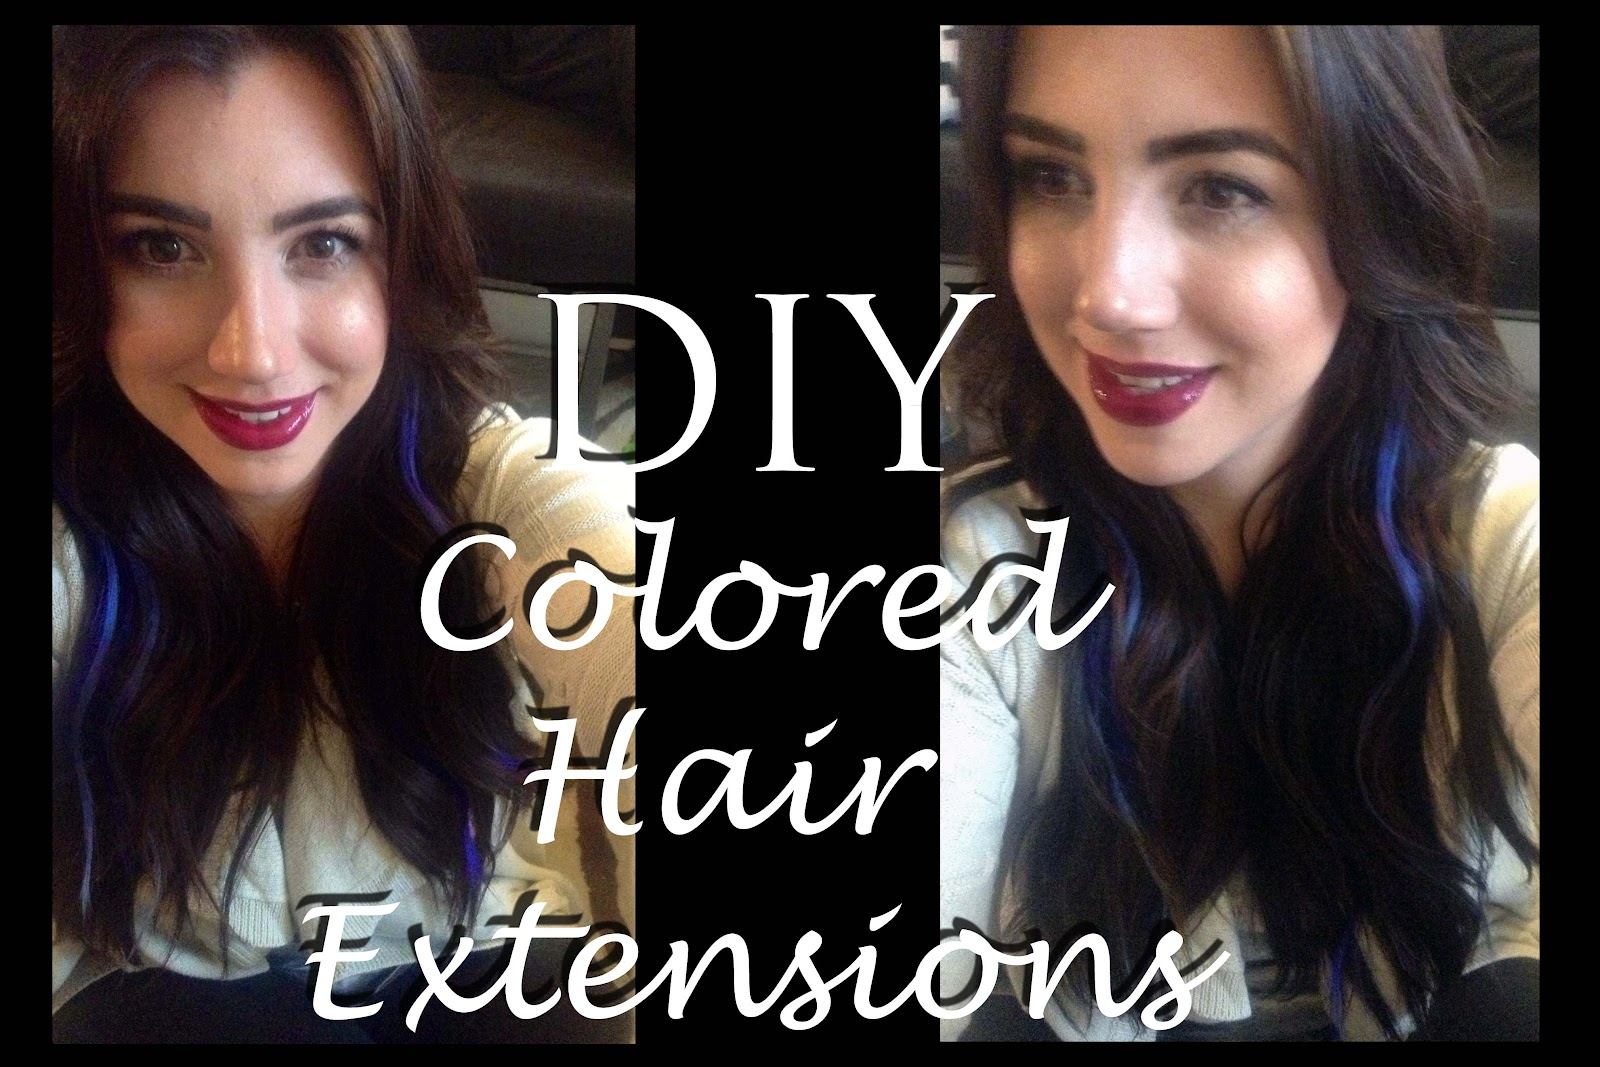 Diy Colored Hair Extensions Tutorial Makeup Beauty Tips Tricks